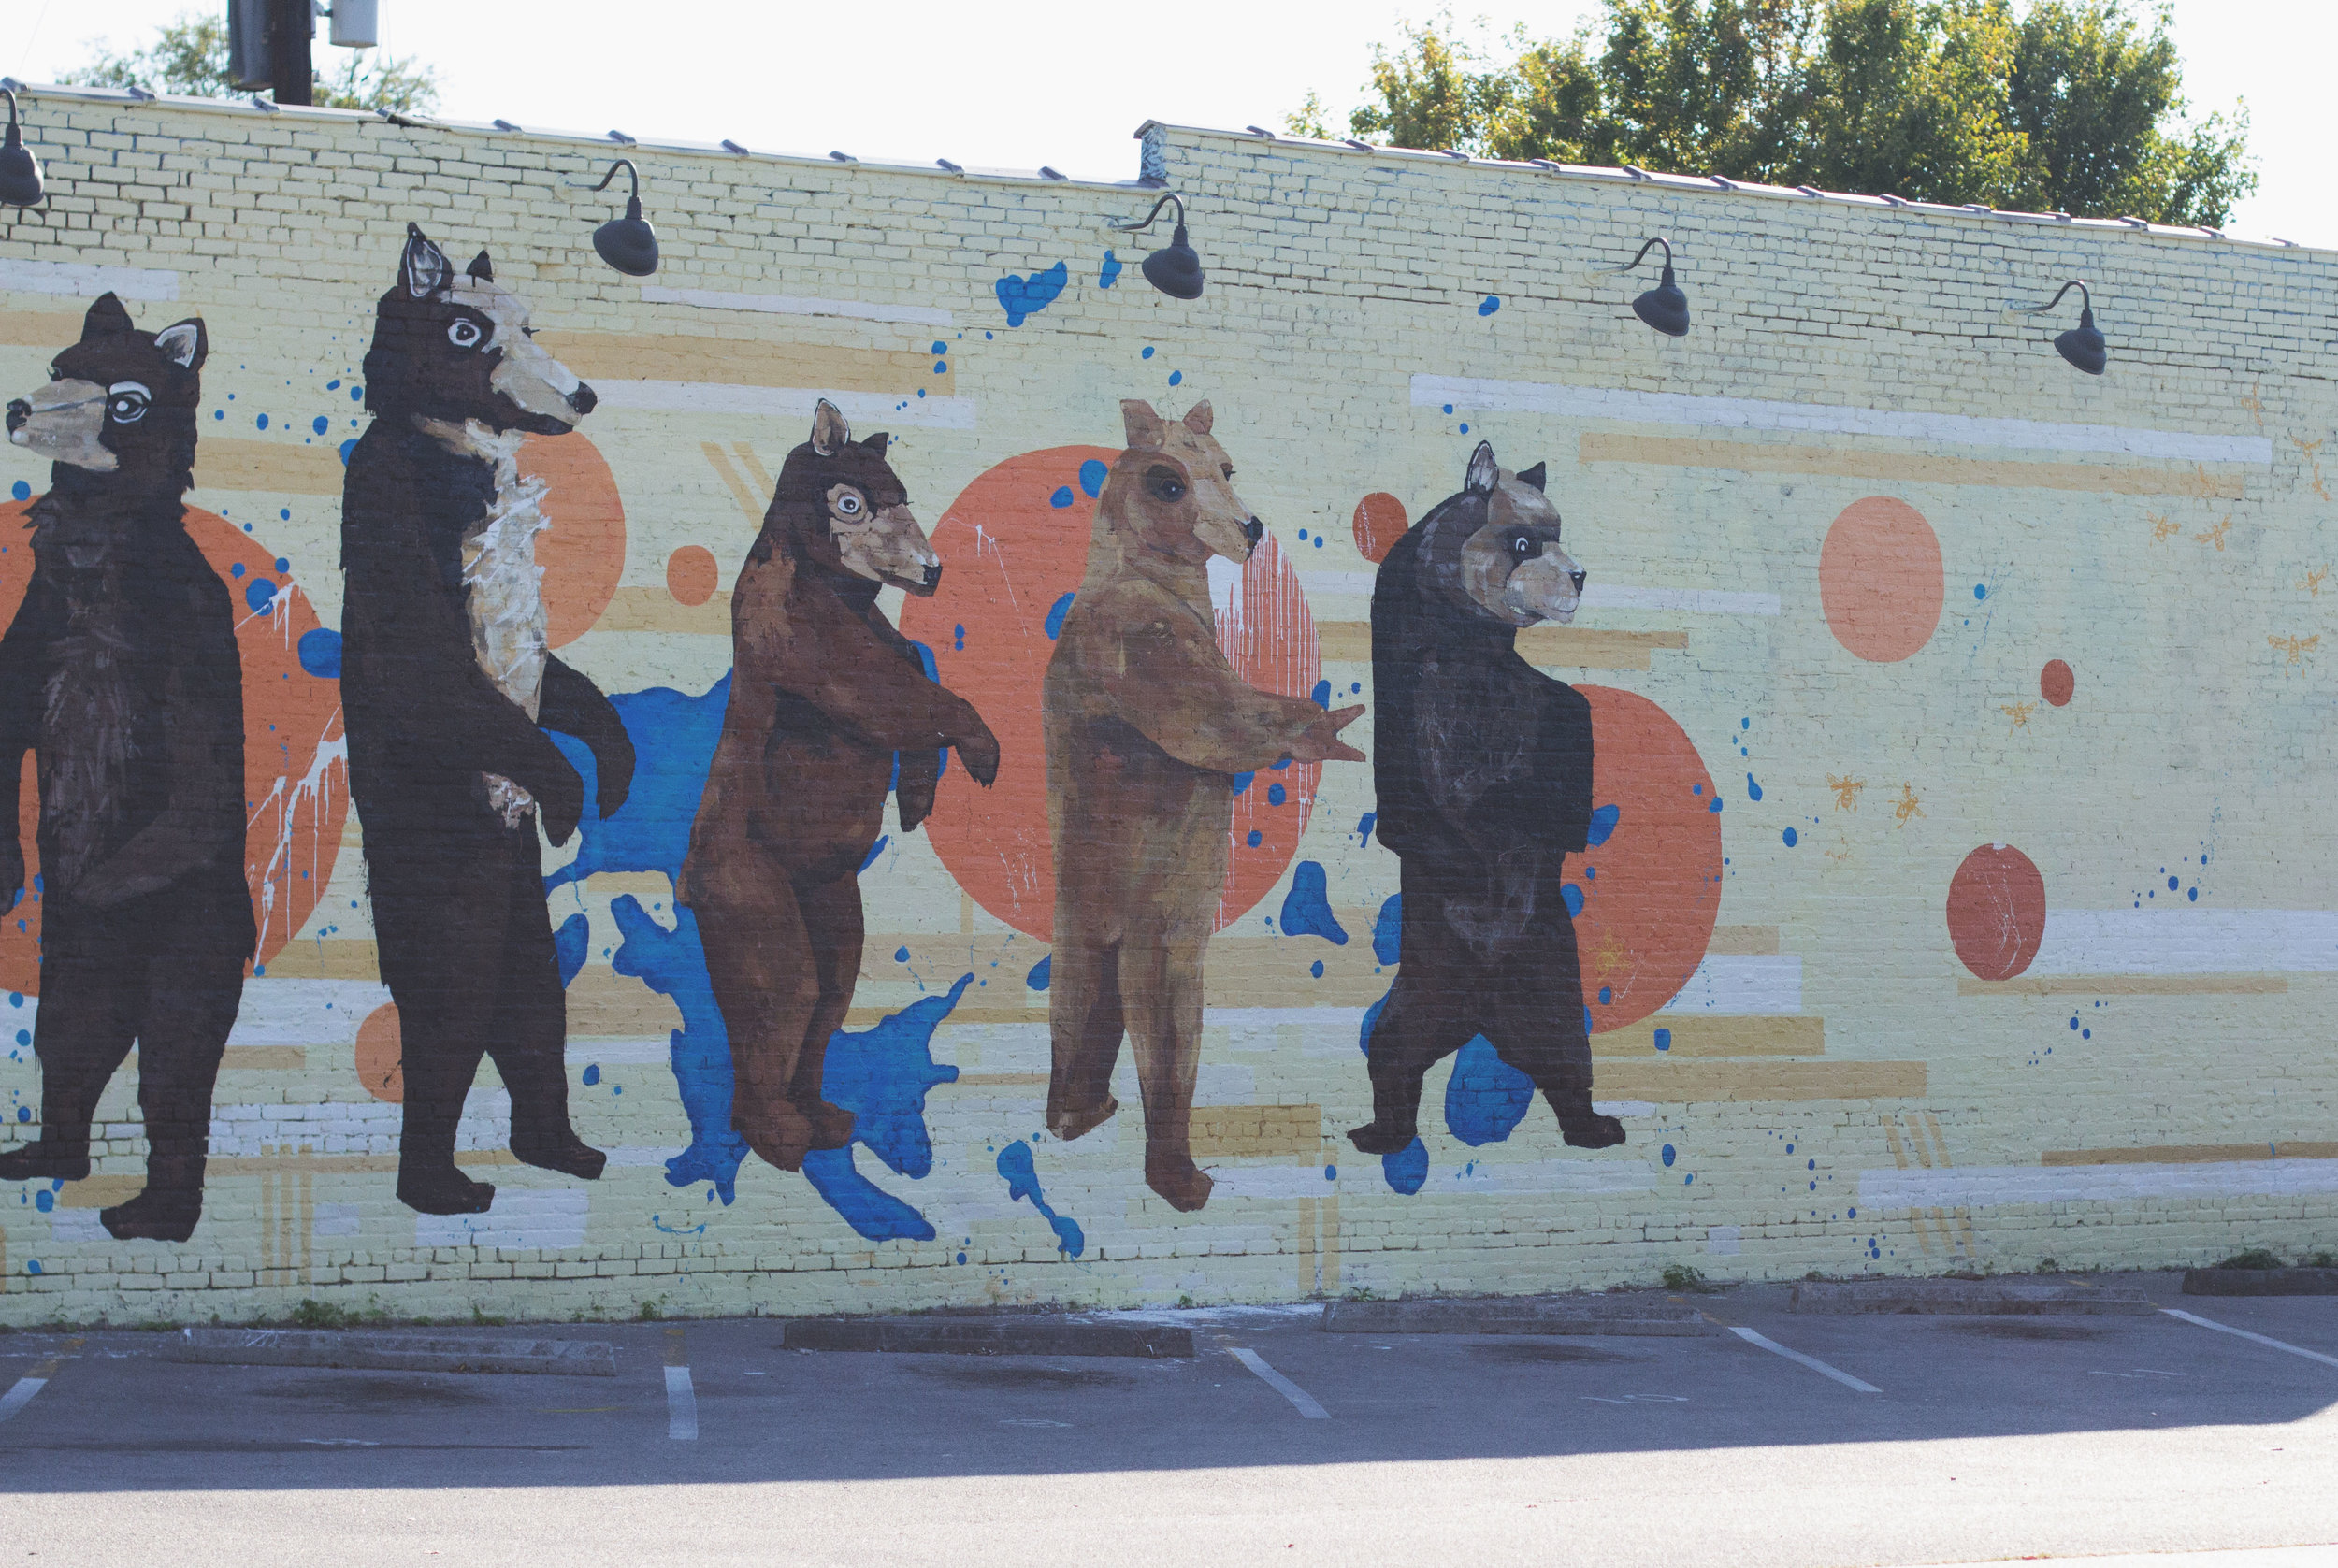 Mural by Leah Tumerman in Five Points, Nashville